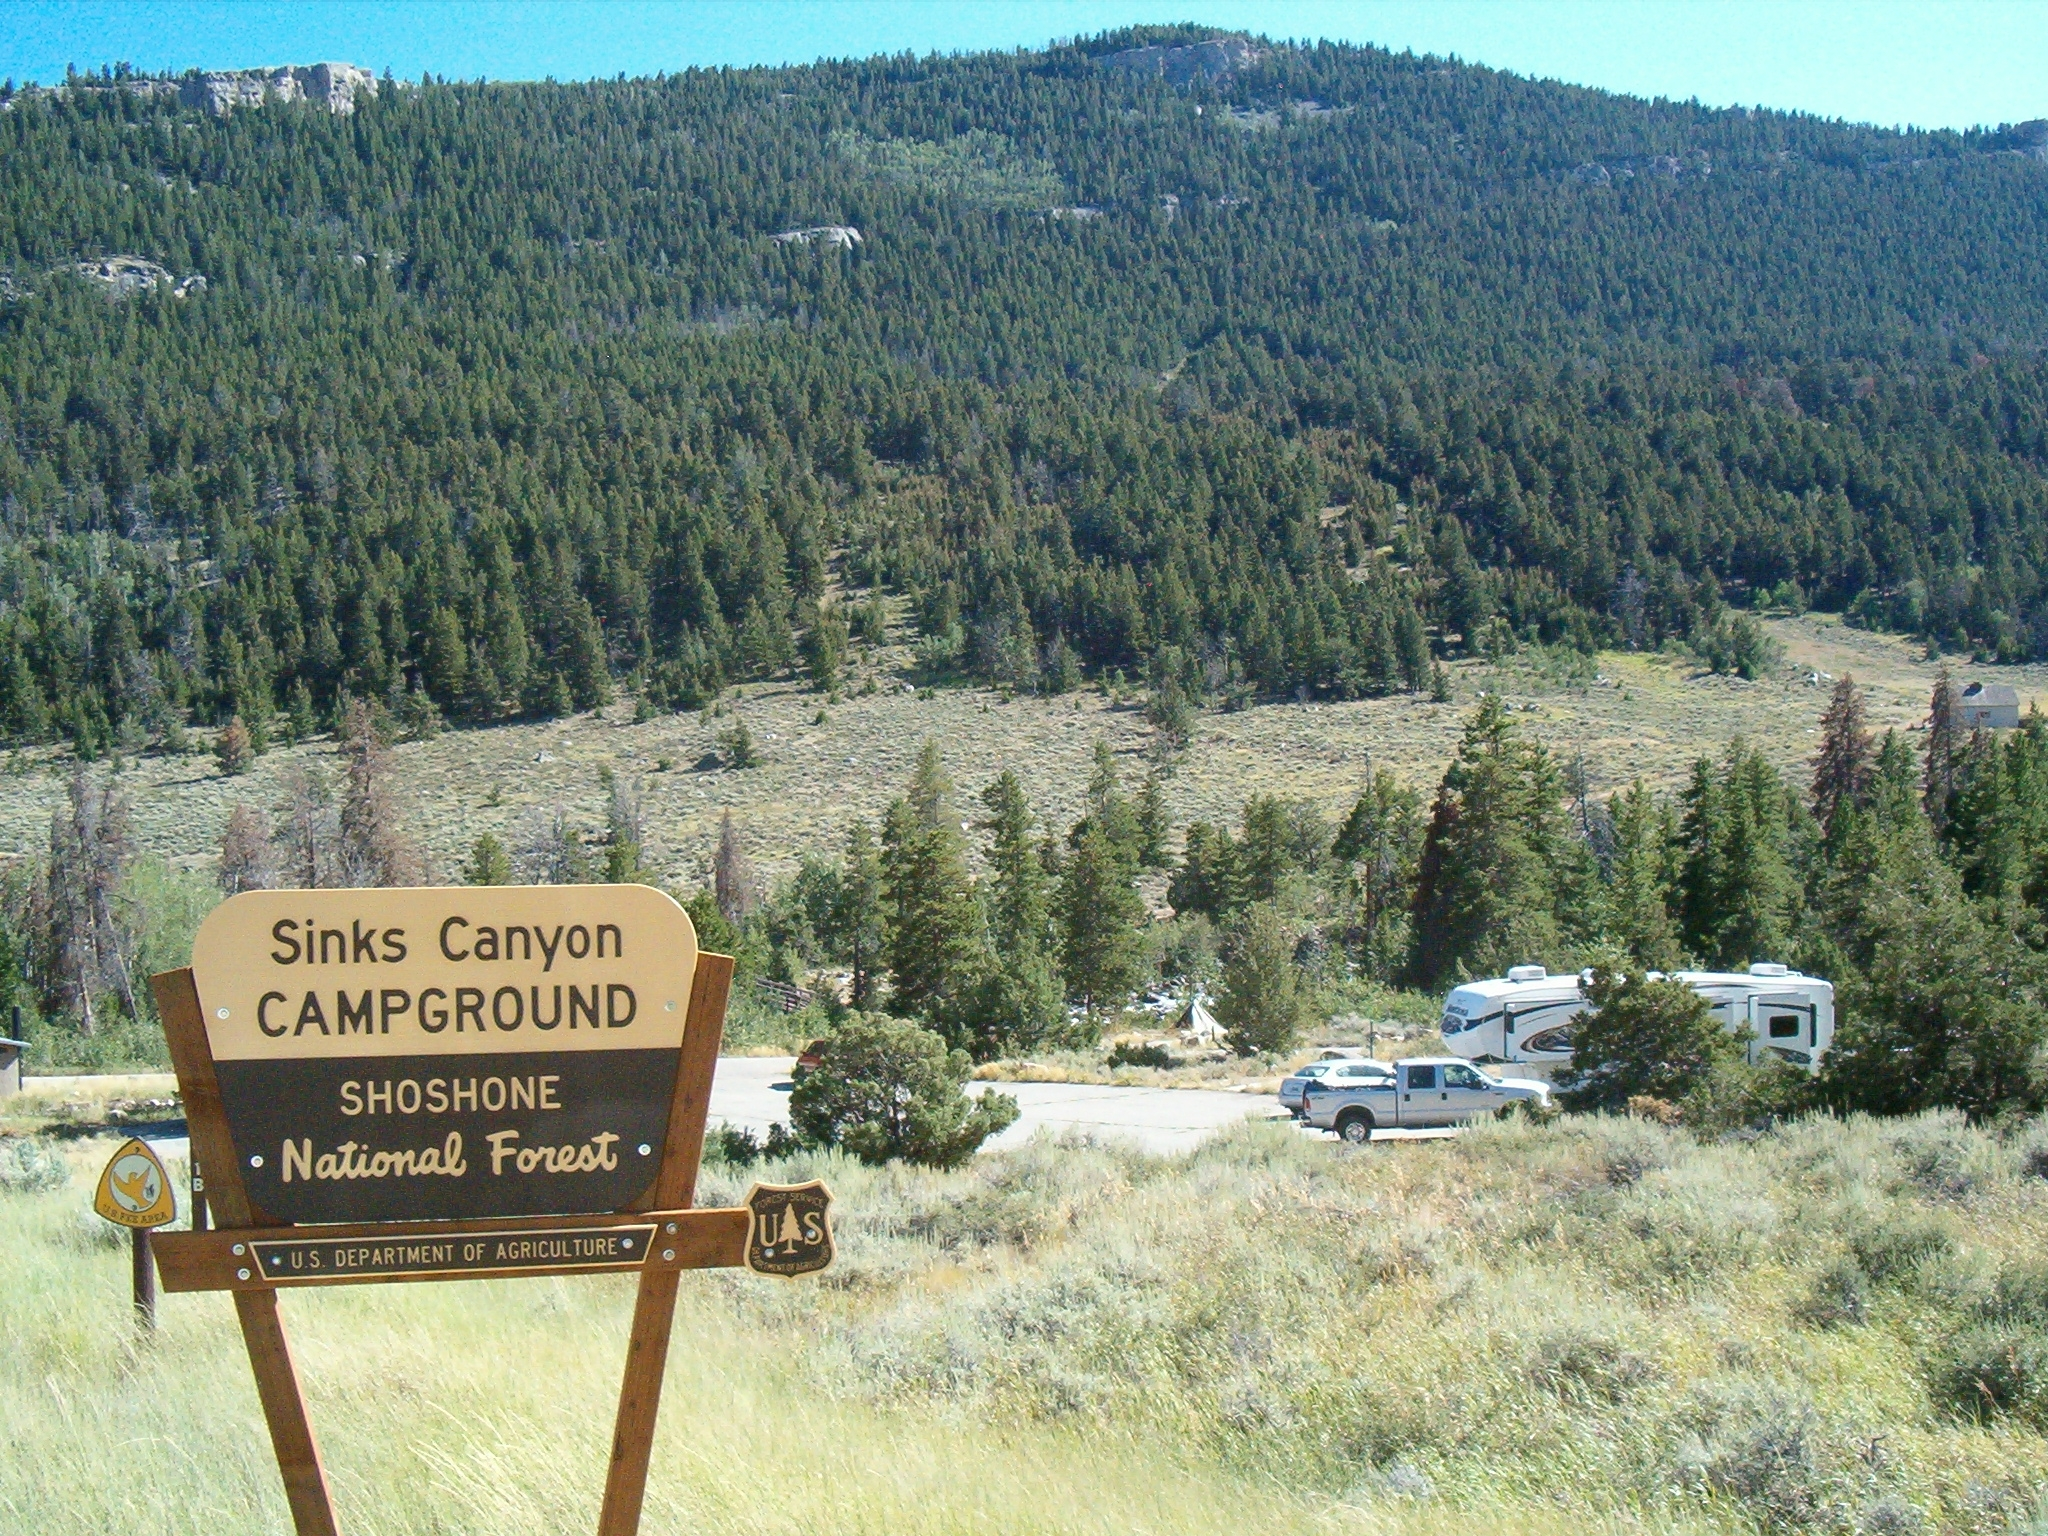 Photo showing the Sinks Canyon Campground sign, with the campground in the background